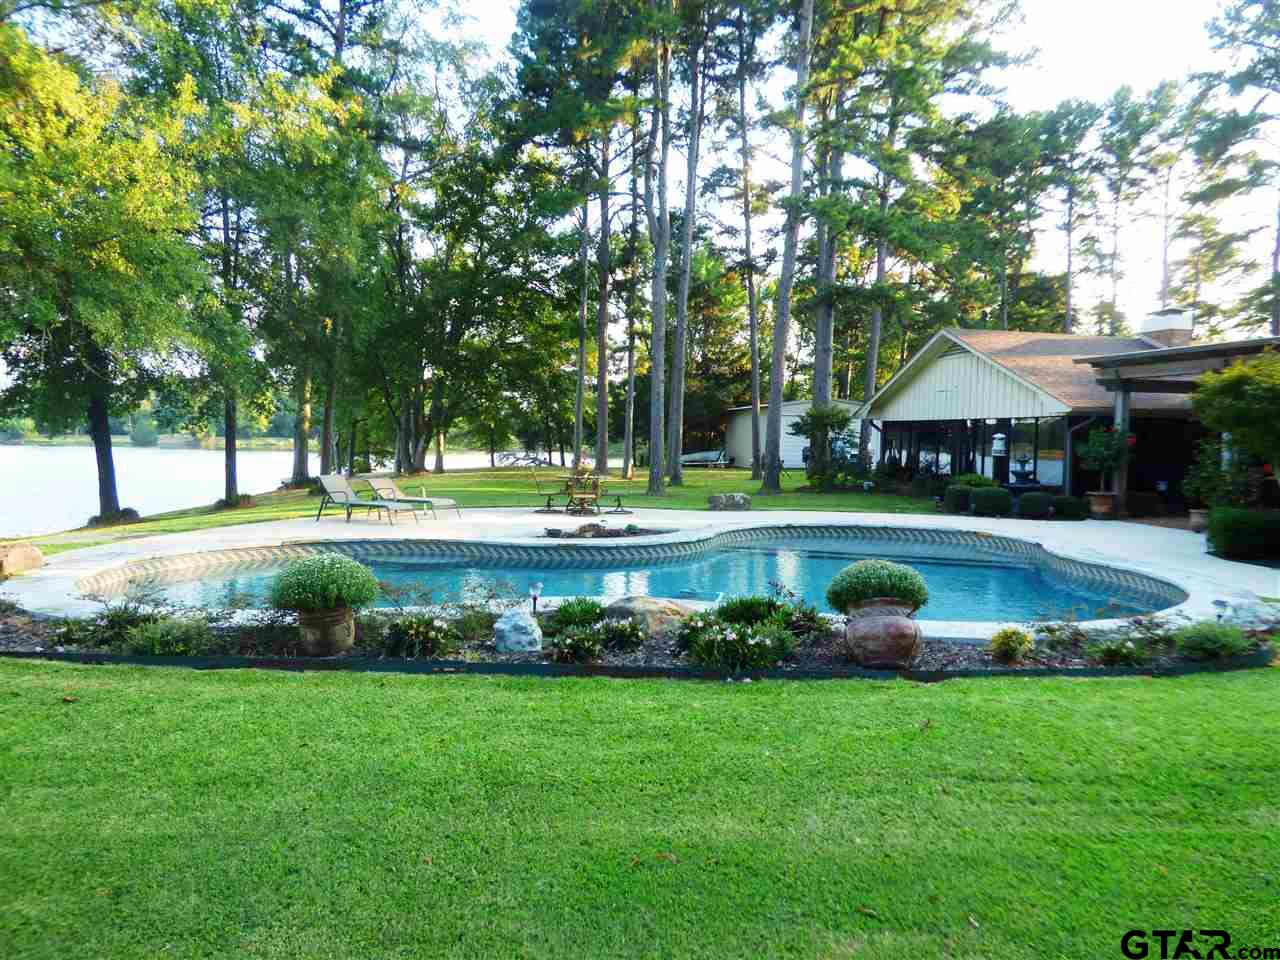 ONE OF A KIND, PRISTINE LAKE FRONT PROPERTY  ONLY A FEW MINUTES FROM TOWN   THIS APPROXIMATE 3300 SQUARE FOOT EXQUISITE HOME SITS ON A 1.6 ACRE PENINSULA WITH FABULOUS VIEWS OF LAKE TANKERSLEY.  IF YOU AND YOUR FAMILY ENJOY ENTERTAINING OR JUST RELAXING AT YOUR OWN RETREAT, THIS IS THE PLACE FOR YOU.  YOU WOULD ENJOY THE HOME WITH 2 LIVING AREAS DIVIDED BY A TWO SIDED  FIREPLACE.  WINDOWS THAT BRING THE OUTSIDE INSIDE AND OVERLOOK THE BEAUTIFUL LAKE AND THE SALTWATER POOL.  THIS BEAUTIFUL PLACE COULD BE CALLED AN OASIS WITH THE OUTDOOR PERGOLA AND KITCHEN/BAR. DID I MENTION THE 1100 SQ FT SHOP WITH BAY DOORS AND THE PROPERTY BOASTS OF 2 WELLS, SPRINKLER SYSTEM, A SECURITY GATE.  TOP OF THE LINE APPLIANCES (PROPANE TANK JUST FOR GAS COOKTOP AND FIREPLACE.  CALL FOR YOUR PERSONAL TOUR OF THIS WATERFRONT RETREAT.